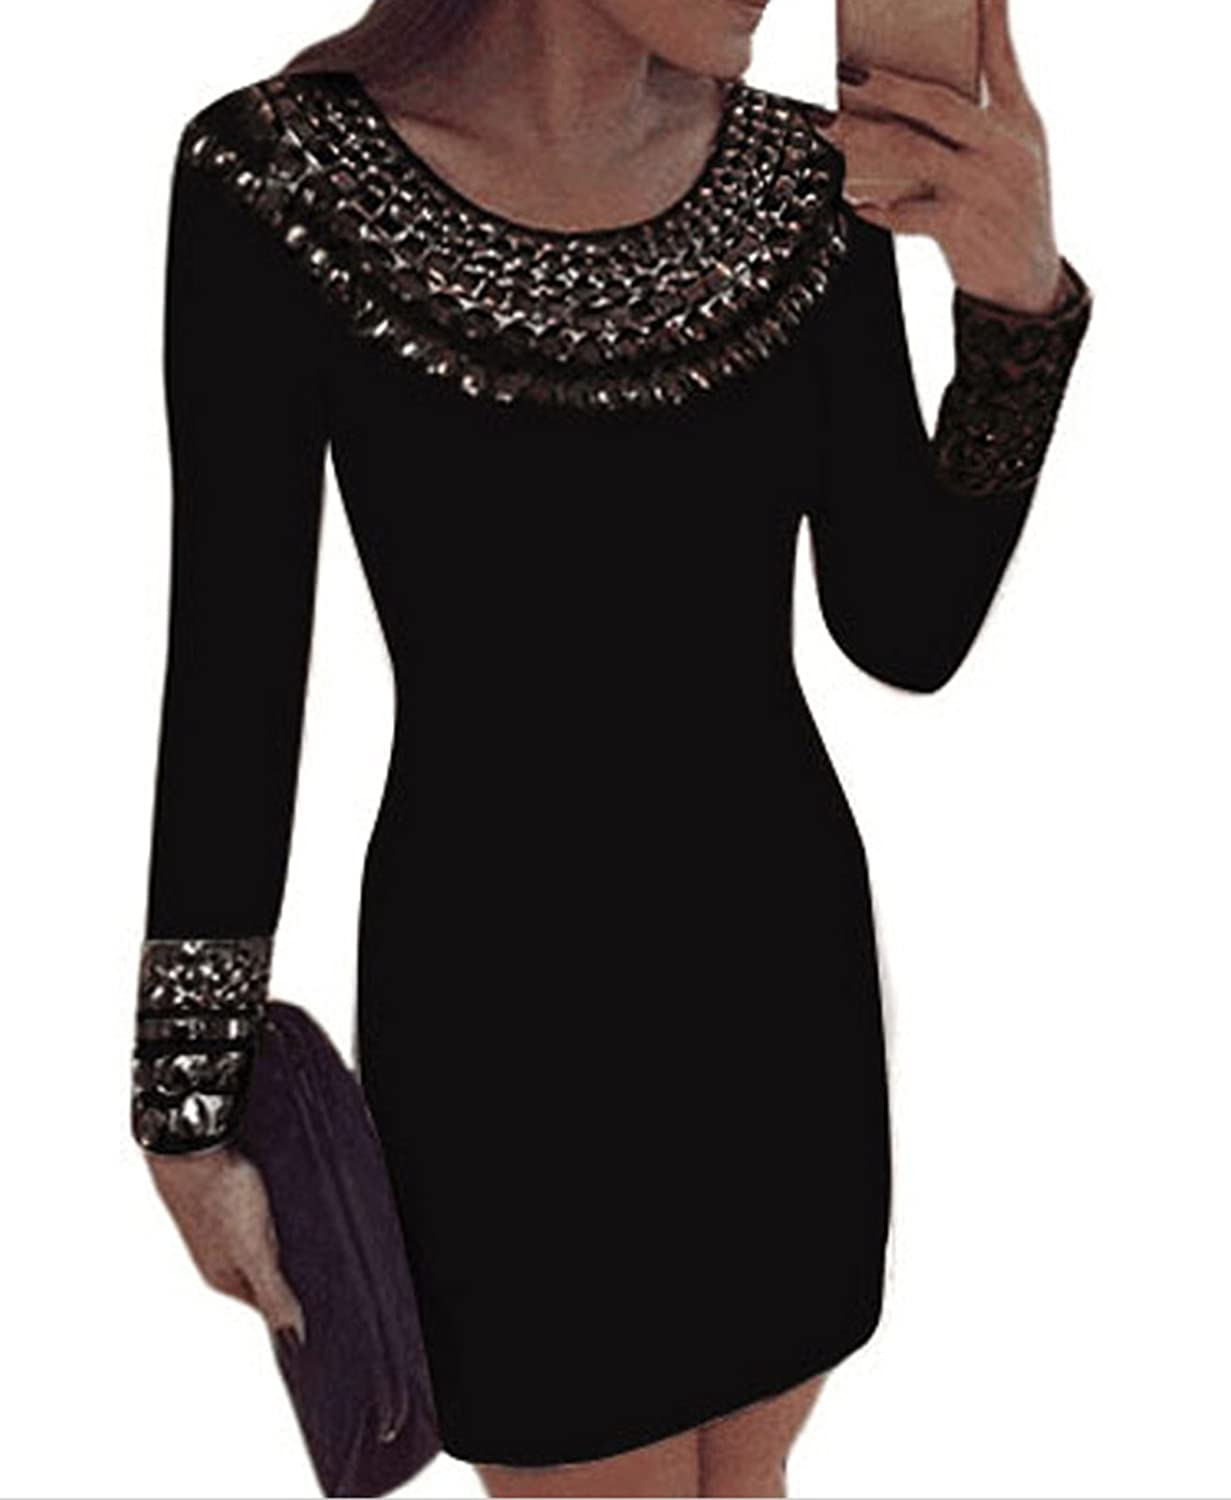 Fempool Women Chic Rivet Scoop Neck Long Sleeves Bodycon Tunic Party Prom Evening Dress